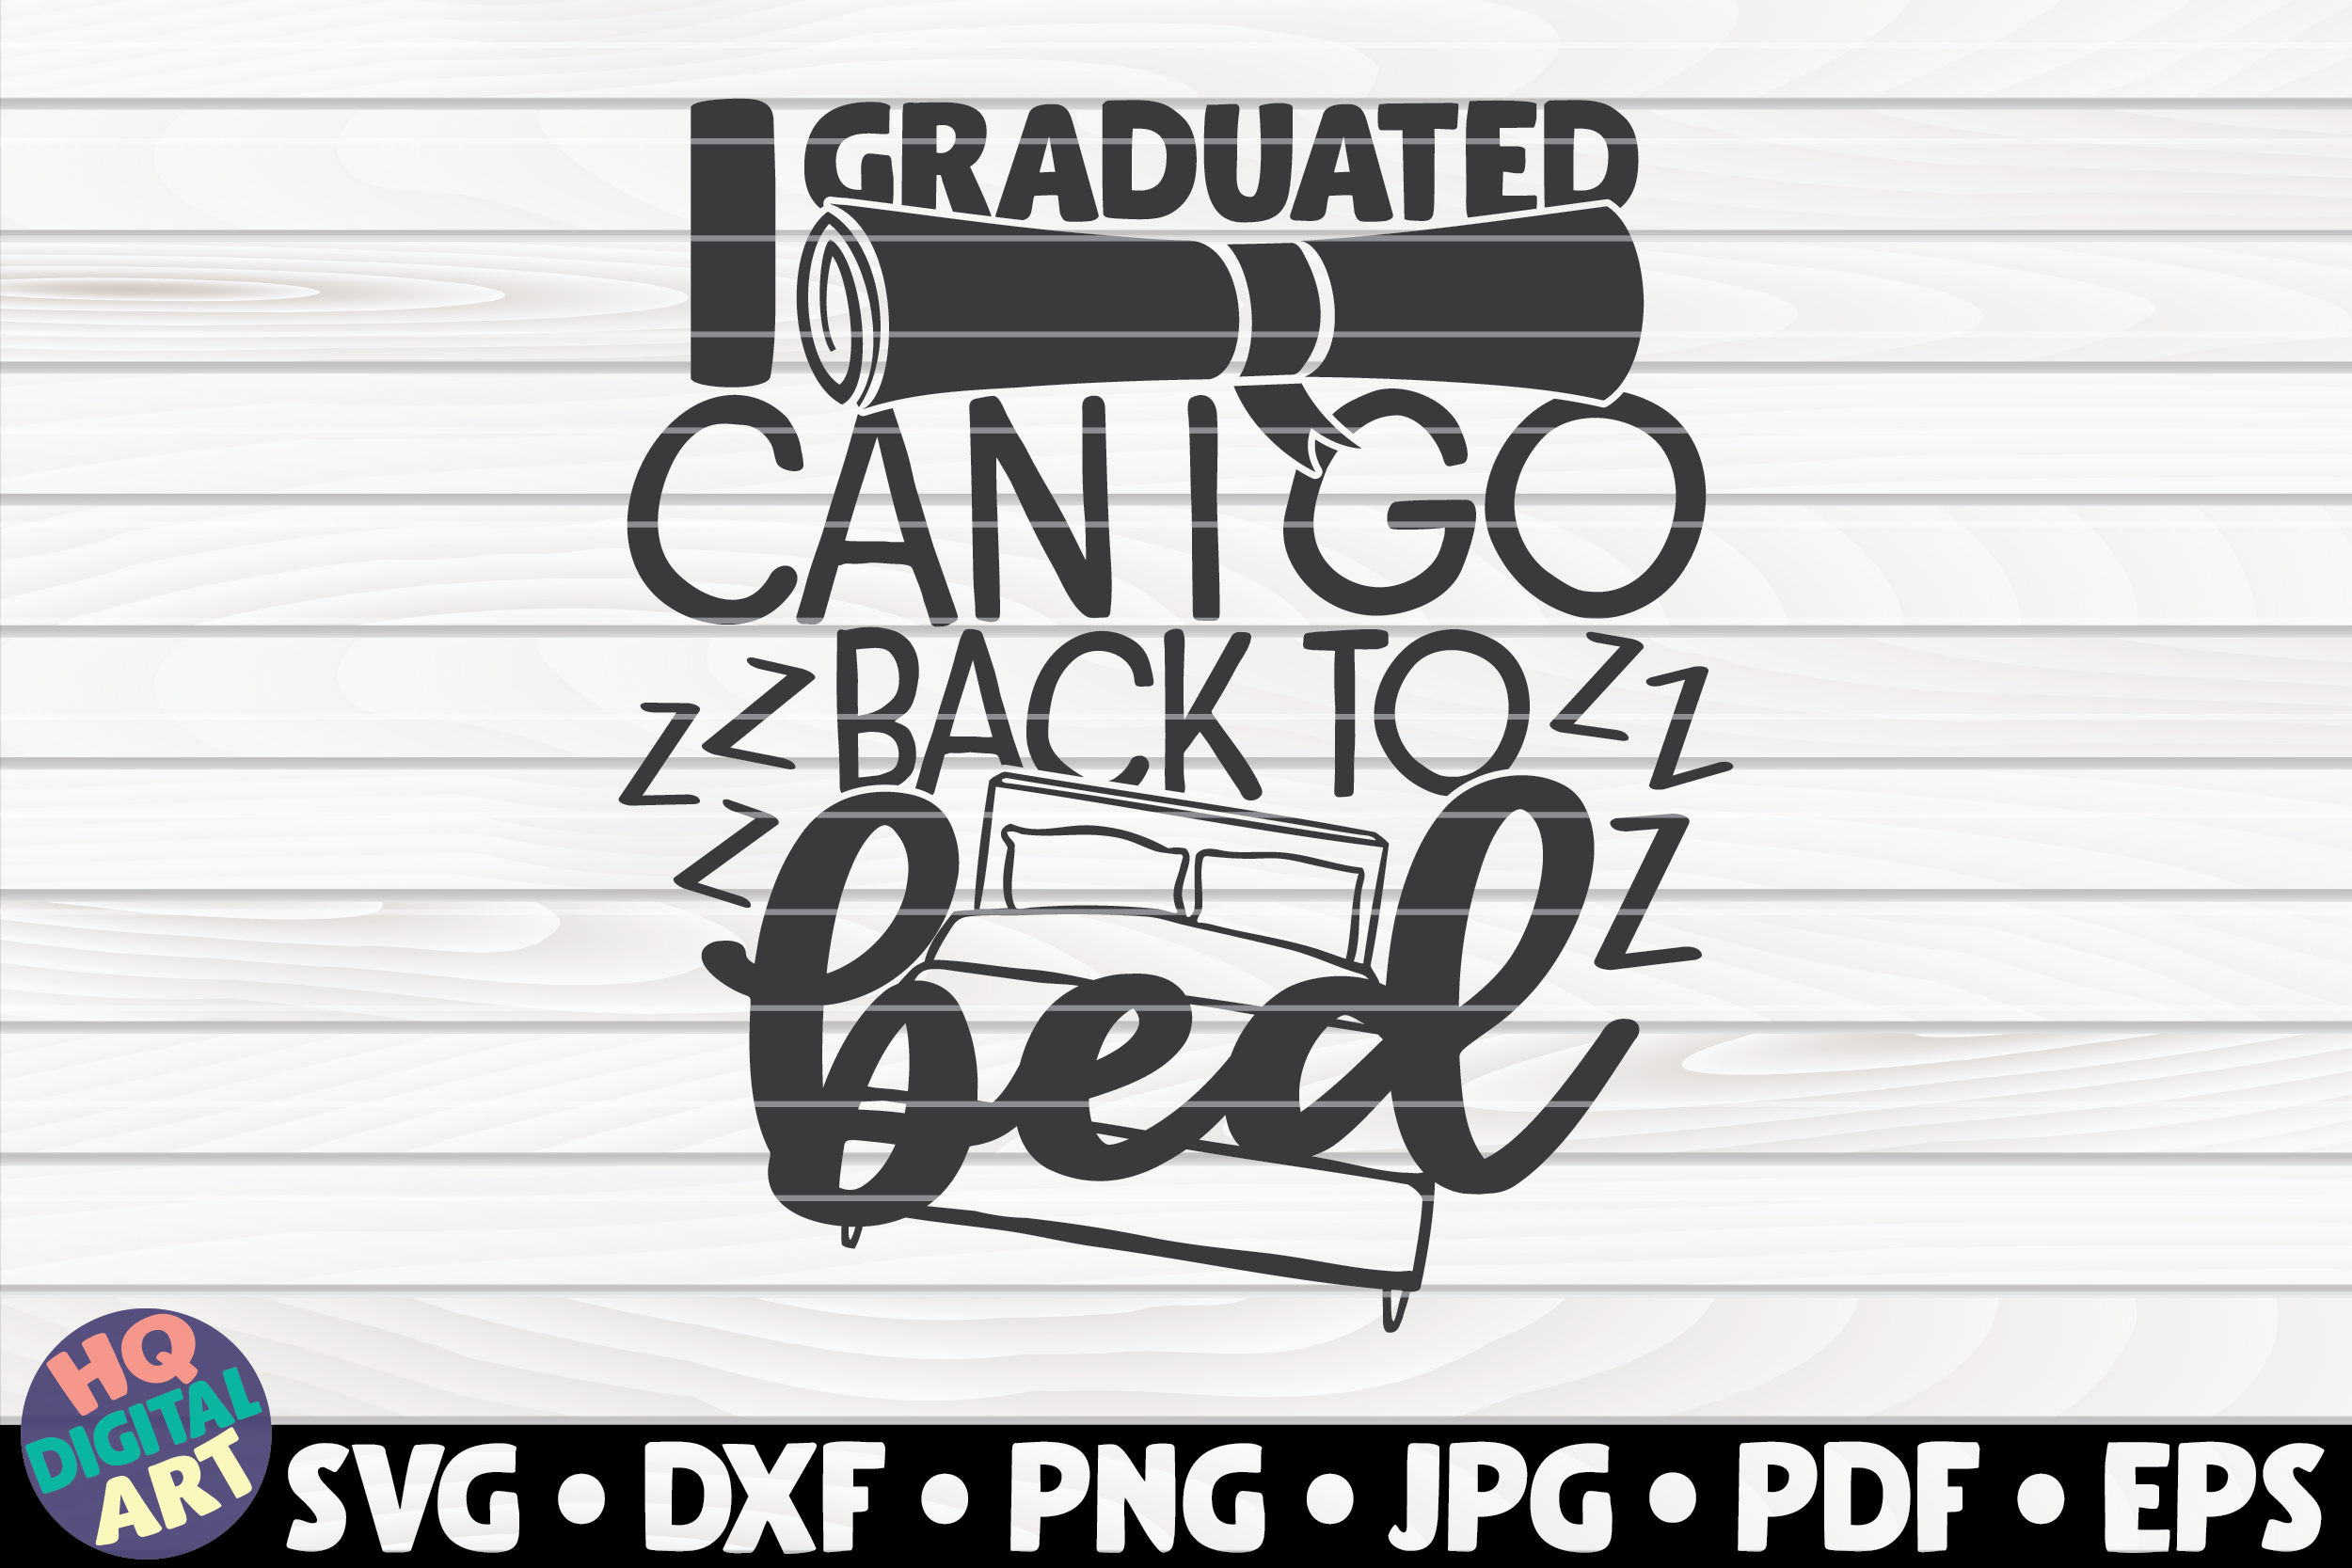 Download Free I Graduated Can I Go Back To Bed Graphic By Mihaibadea95 for Cricut Explore, Silhouette and other cutting machines.